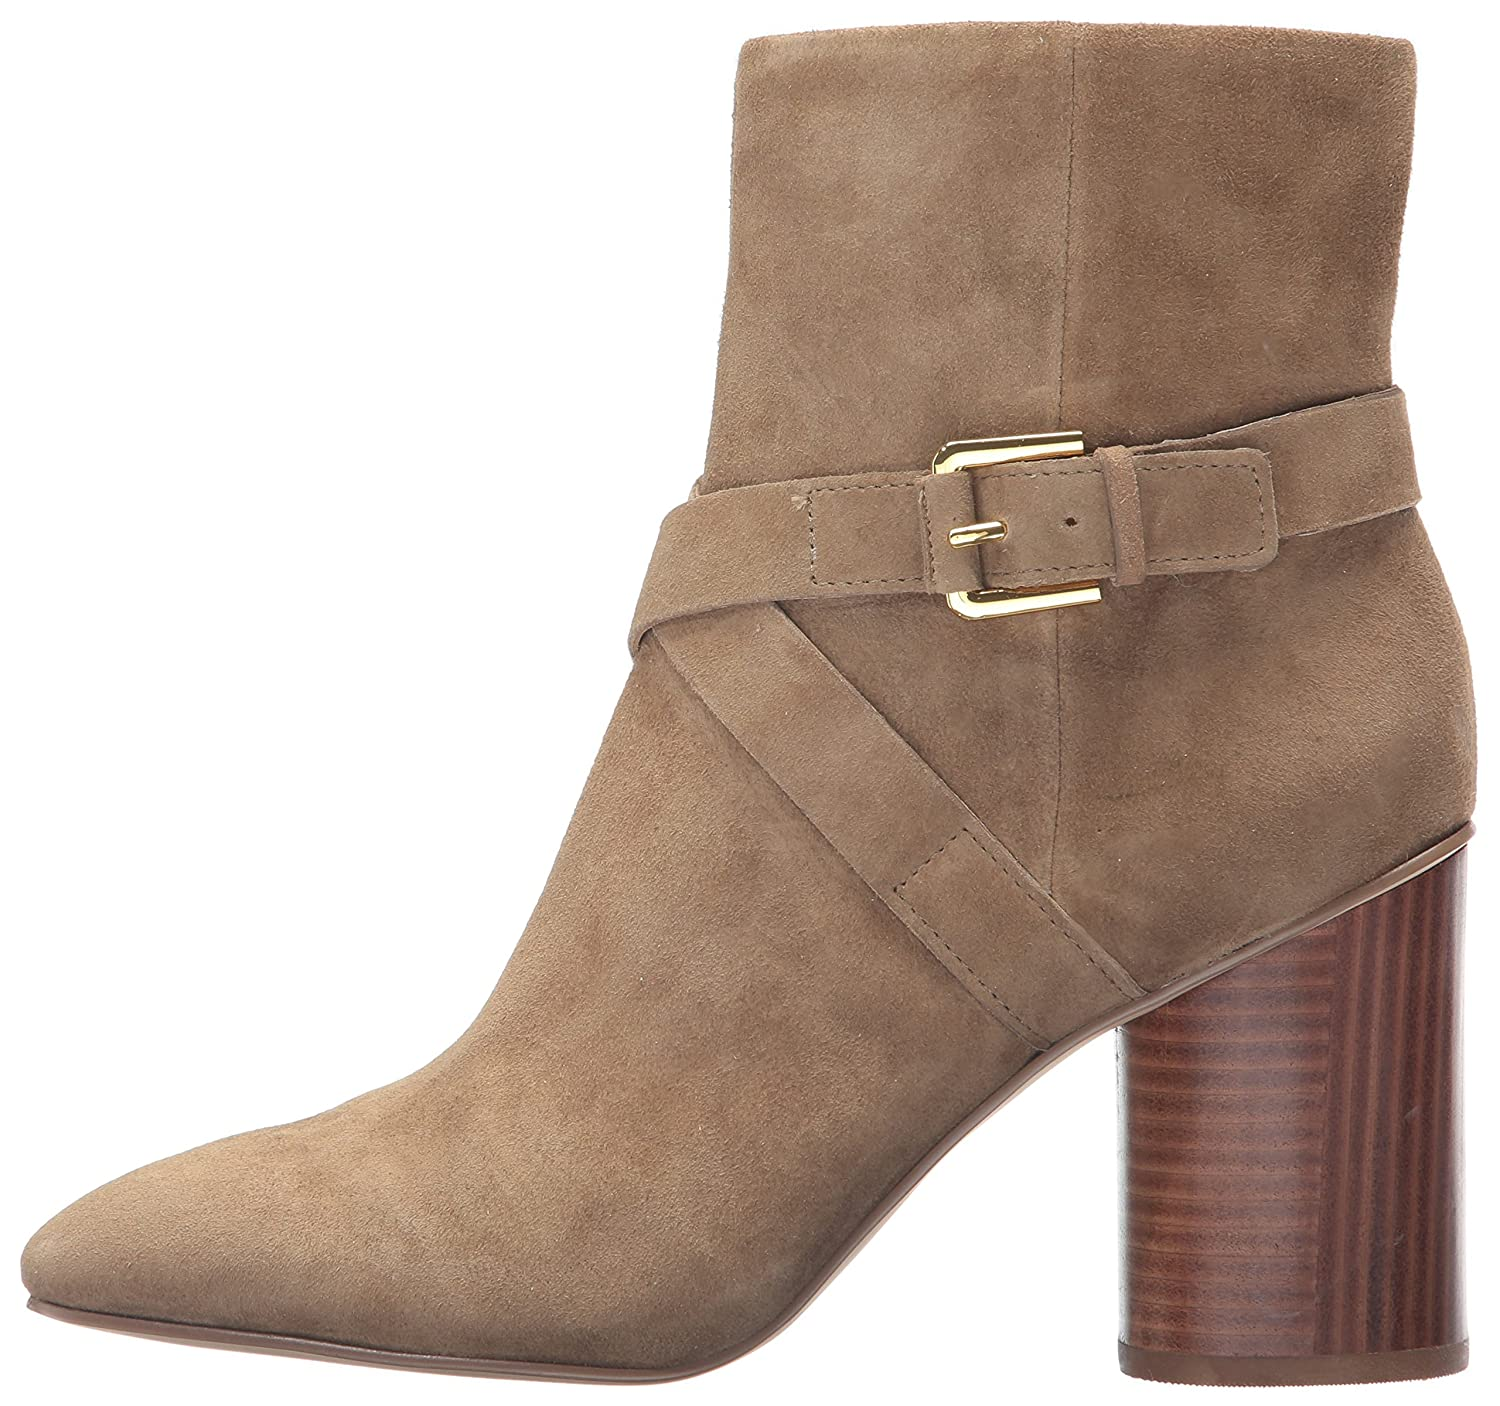 Nine West Women's B(M) Cavanagh Suede B071HPSHKM 12 B(M) Women's US|Green 59e20e